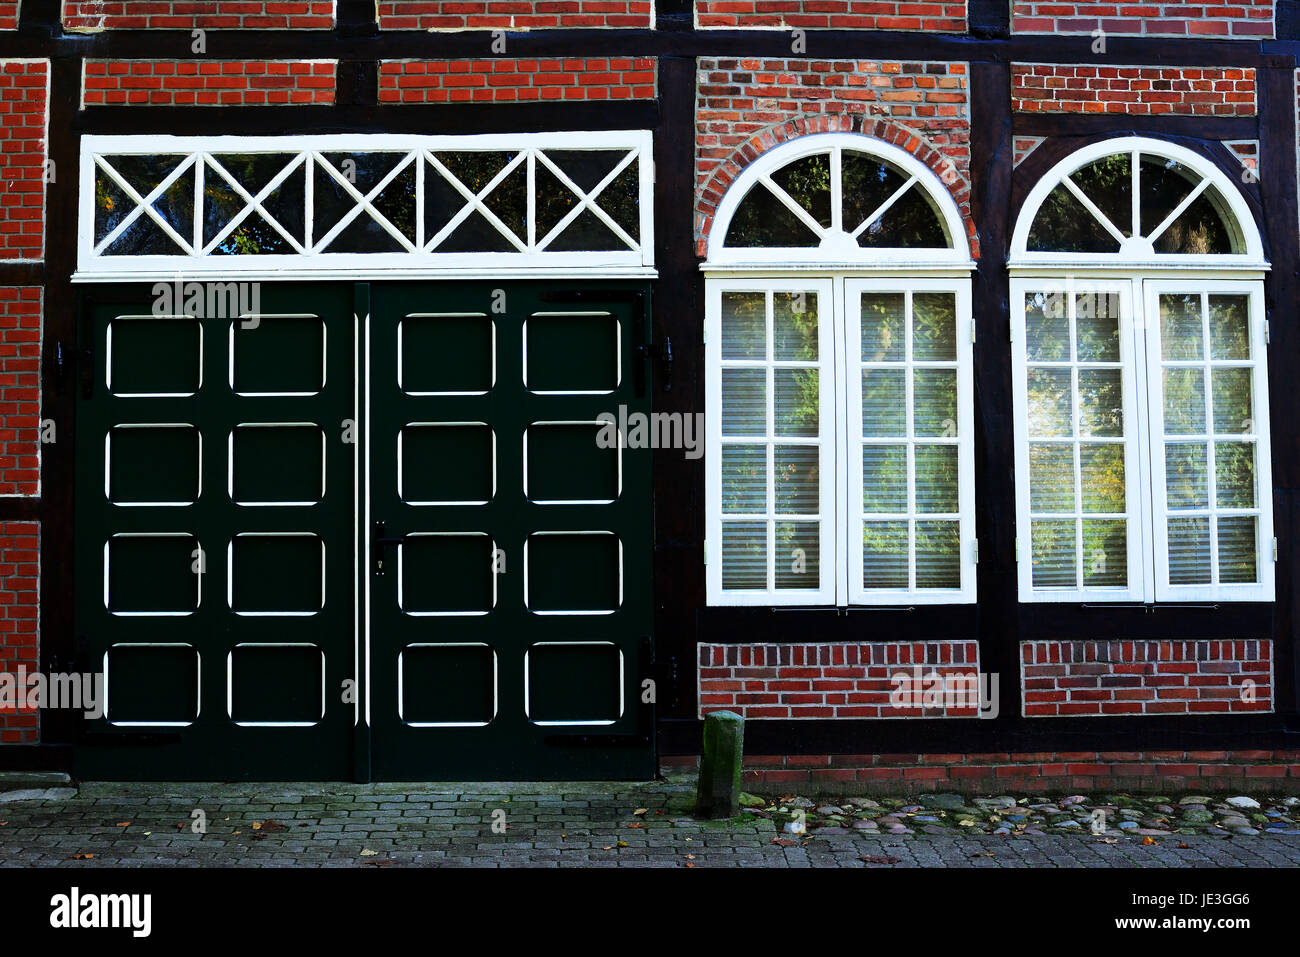 Wooden Gate With Arched Windows Stock Photo 146366982 Alamy